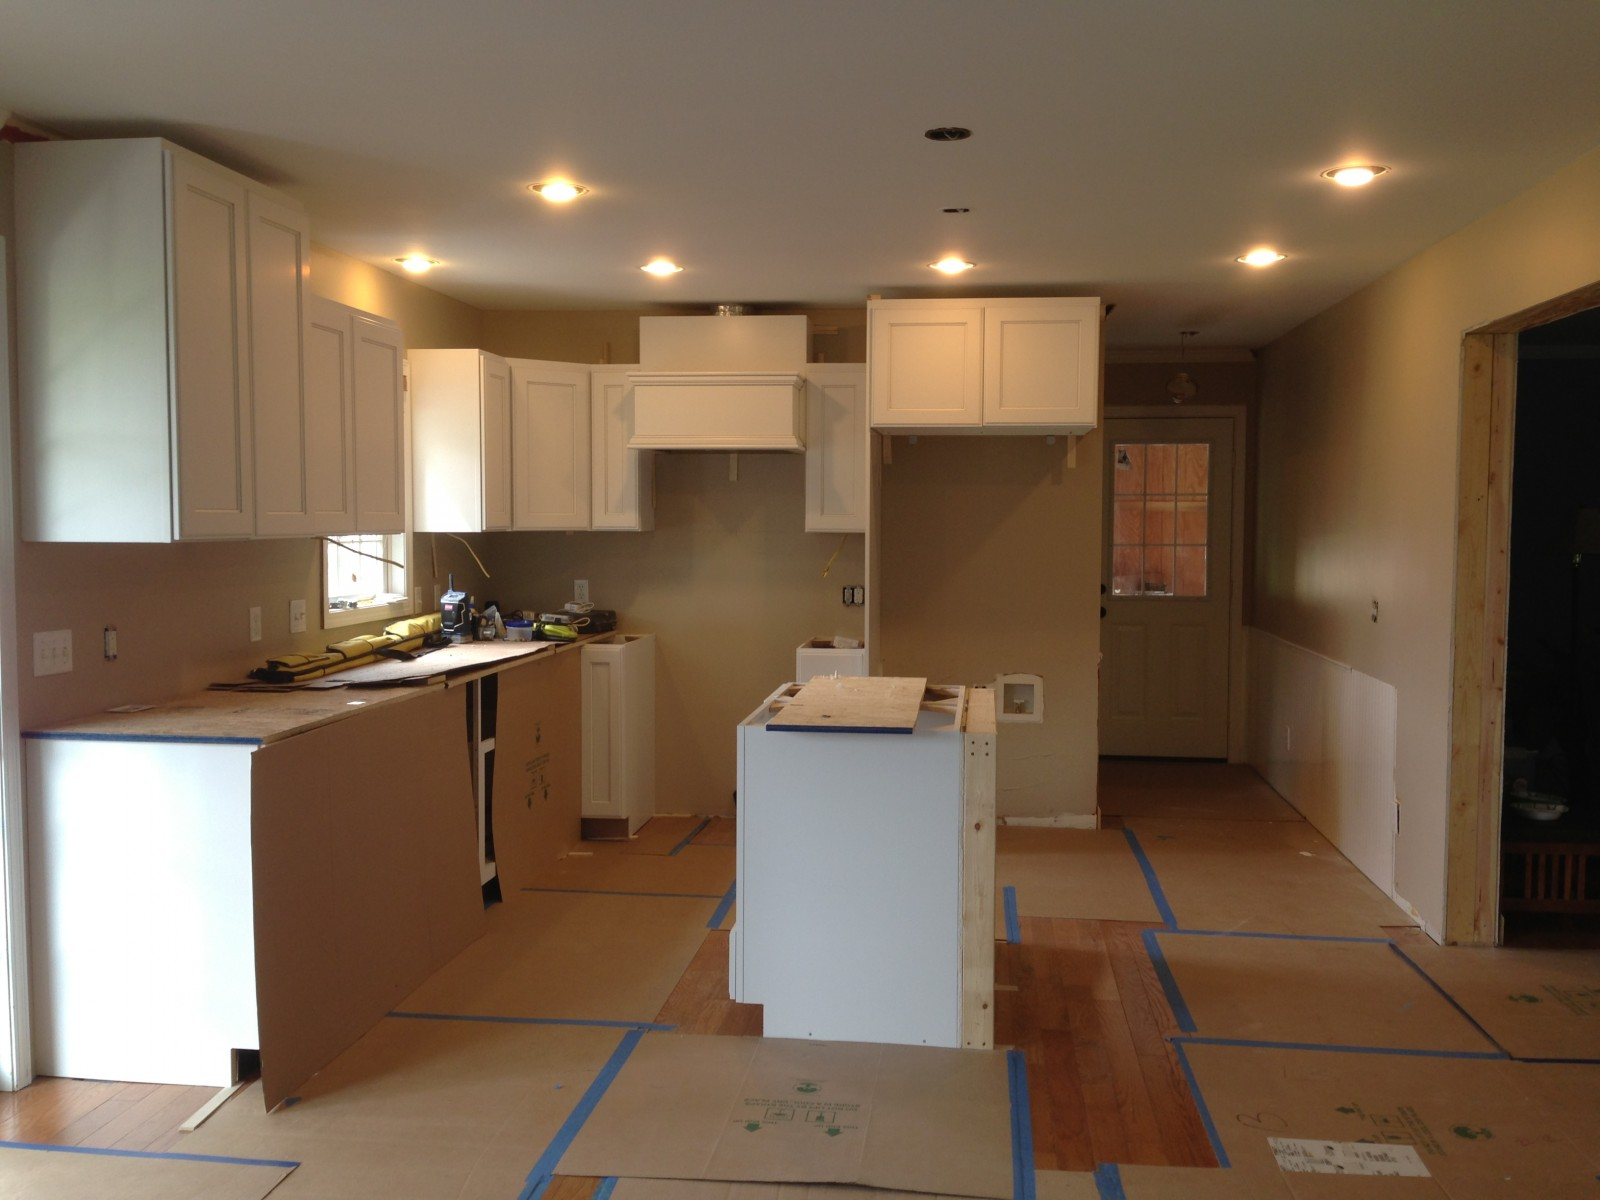 Wilmington Kitchen, Family Room & Laundry Room  Cabinet Installation